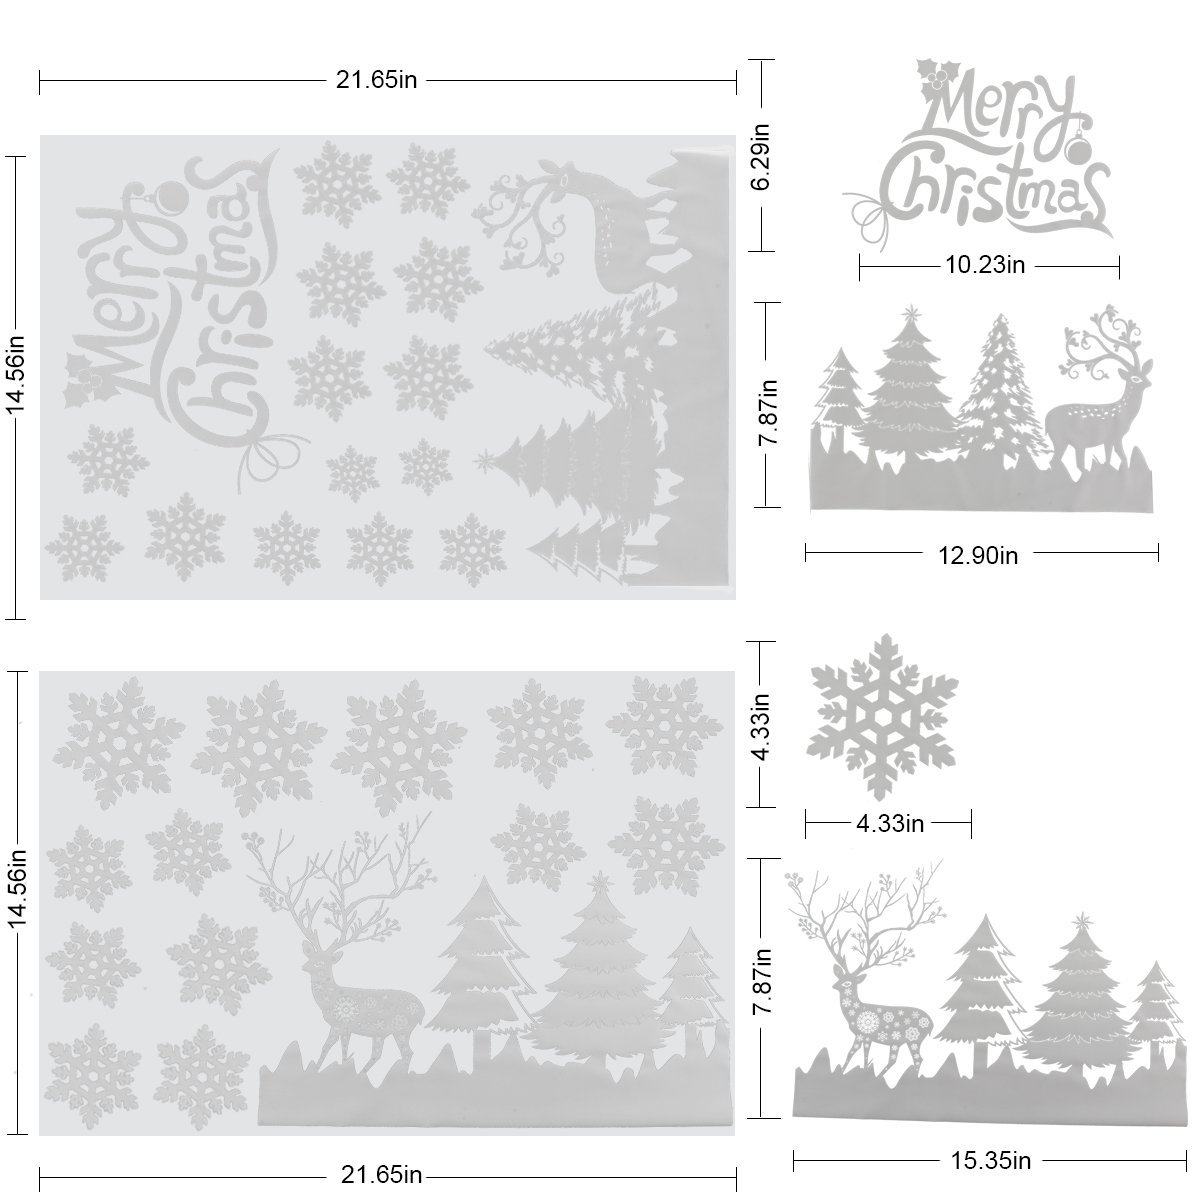 Christmas Window Decals Stickers,White Christmas Tree Snowflakes reindeer Window Clings Decal Stickers Xmas Winter Wonderland Decorations Ornaments Party Supplies